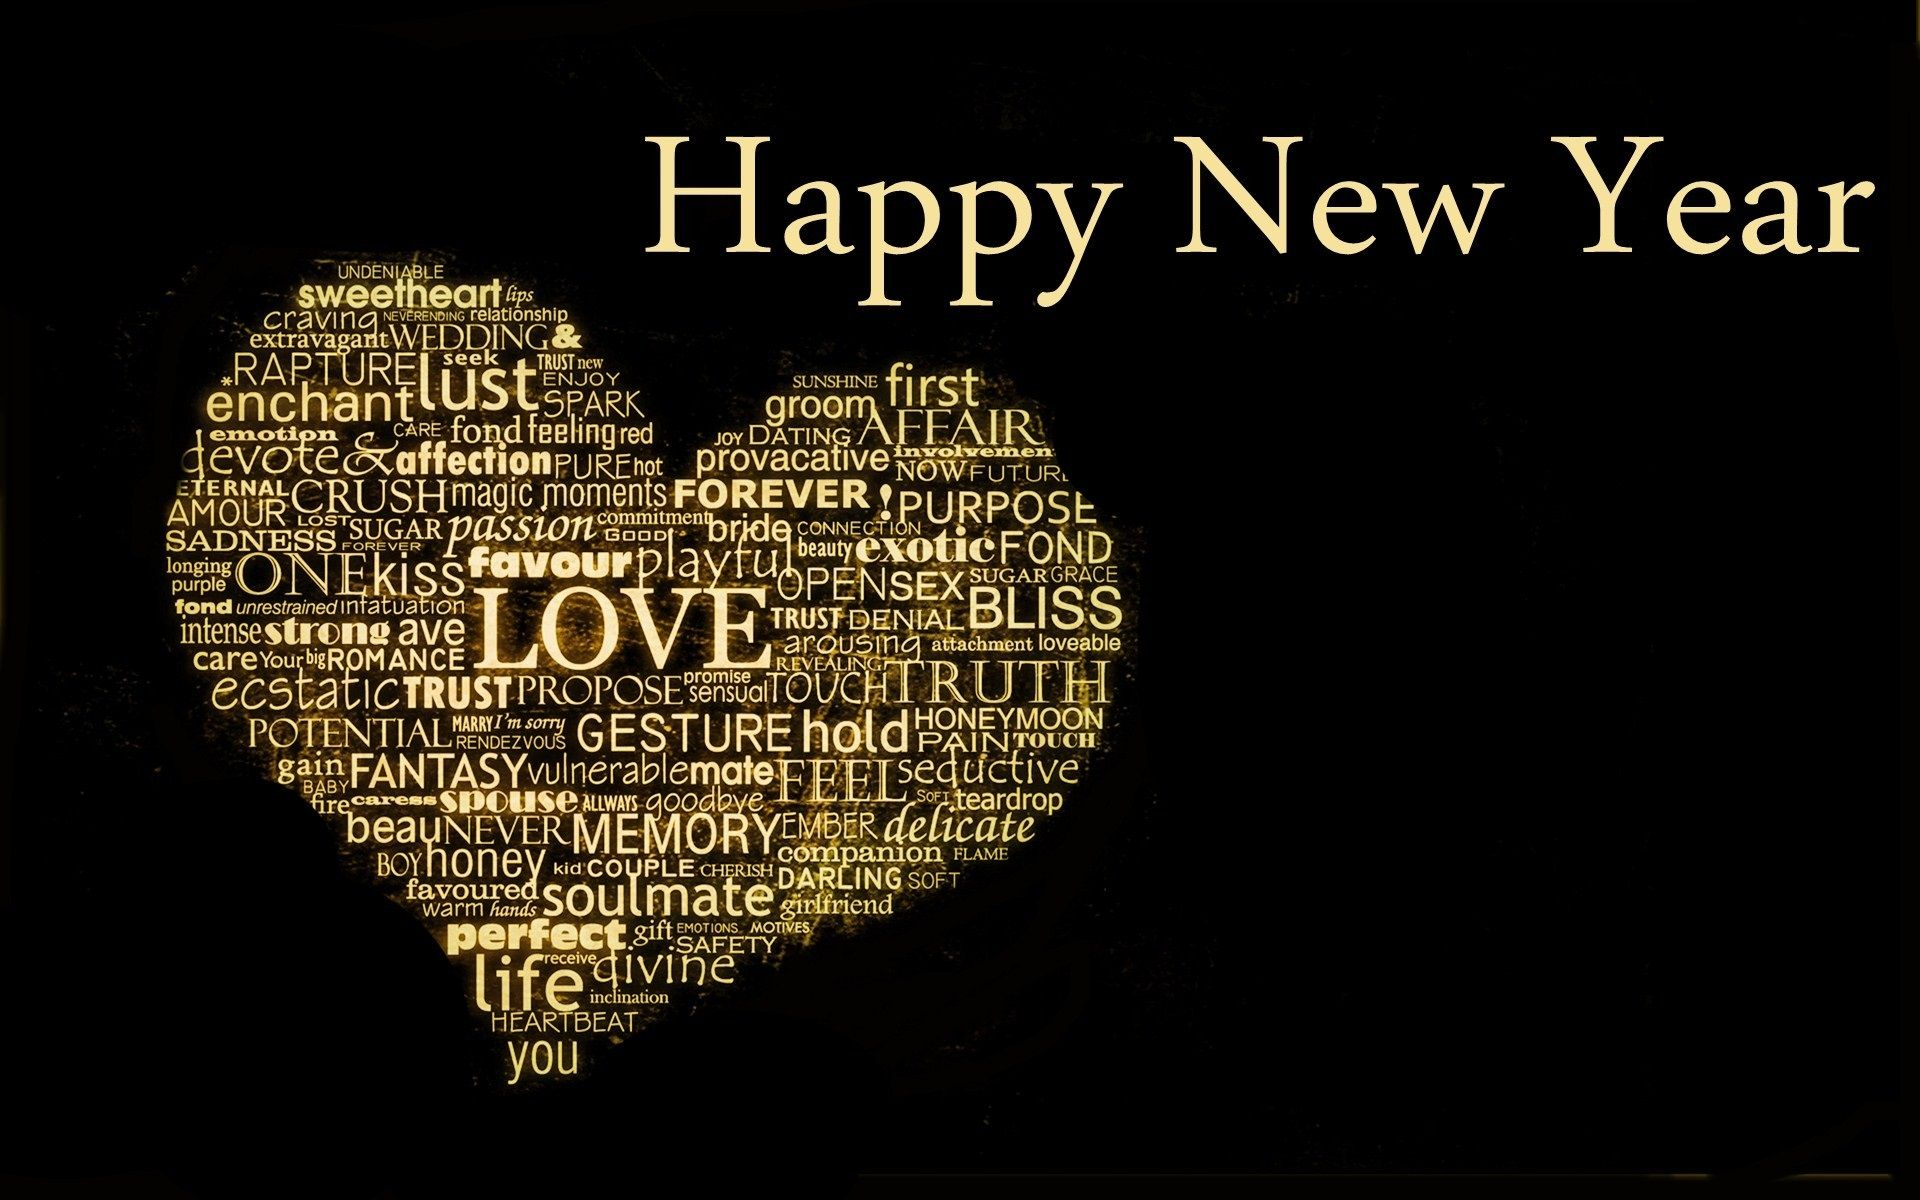 Happy New Year 2016 Wallpapers And Images Httpwww